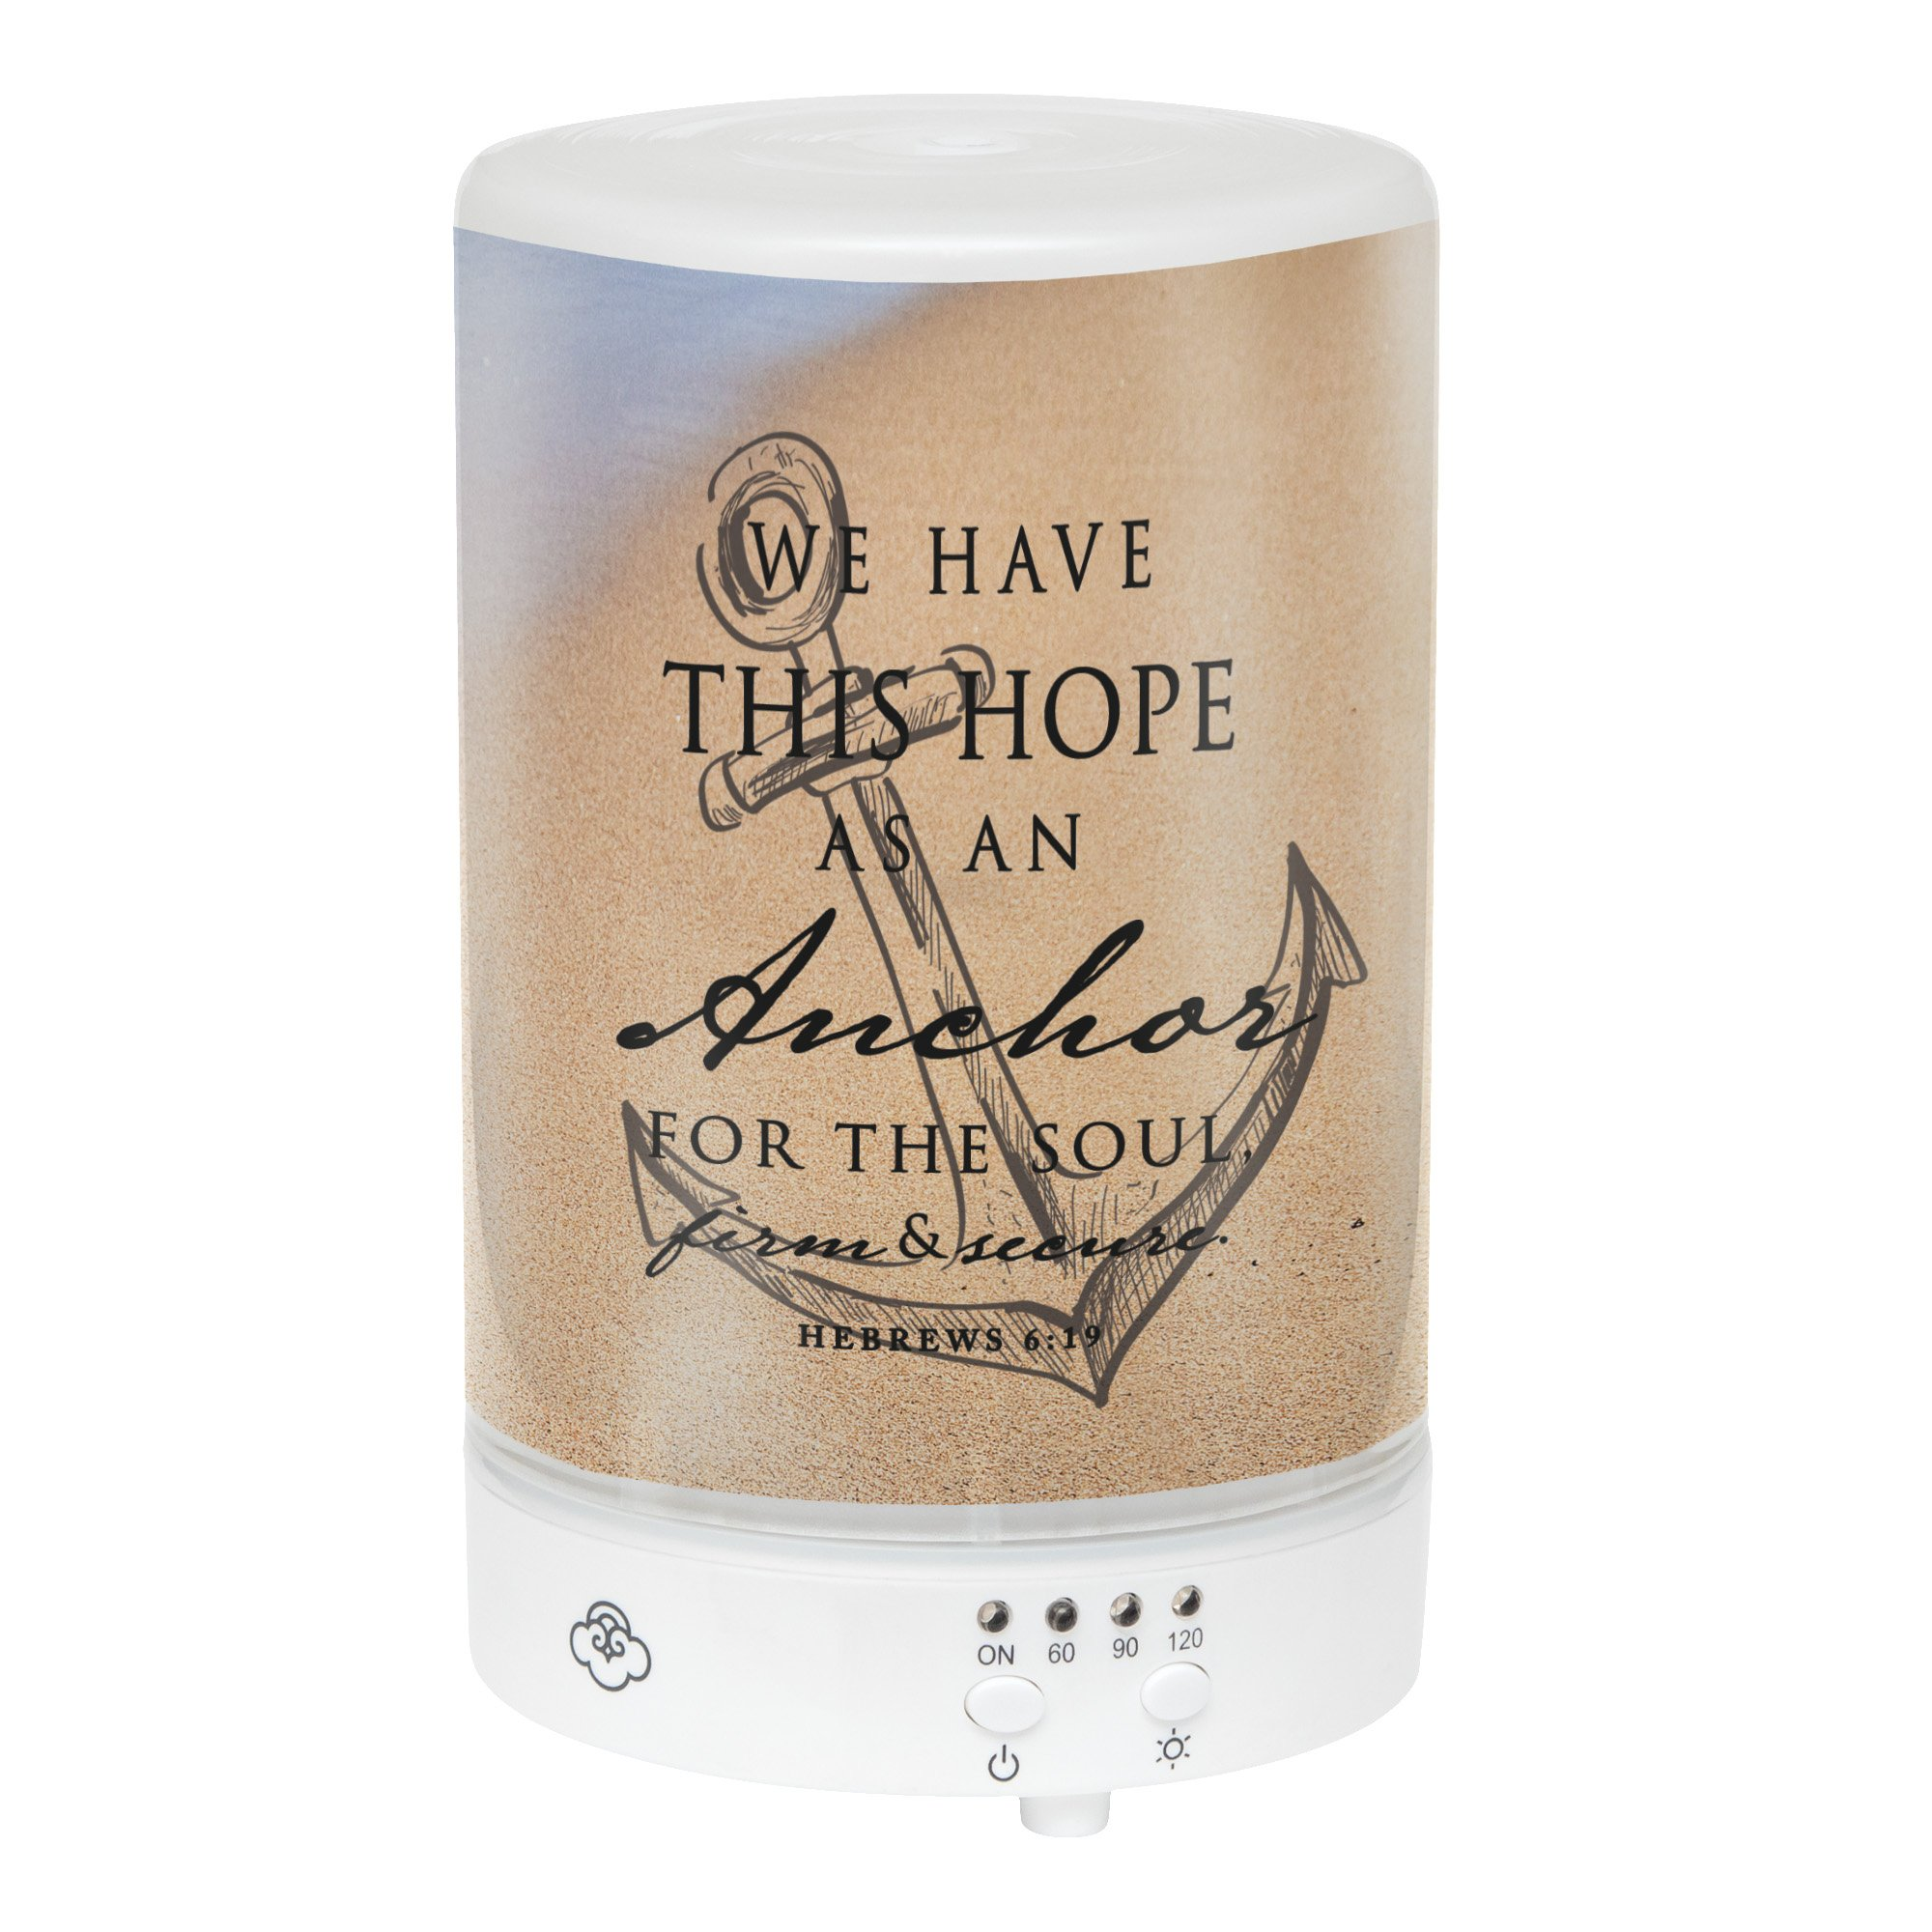 Elanze Designs Hope As Anchor for Soul Firm Secure Frosted Glass 8 Color LED Light Essential Oil Diffuser by Elanze Designs